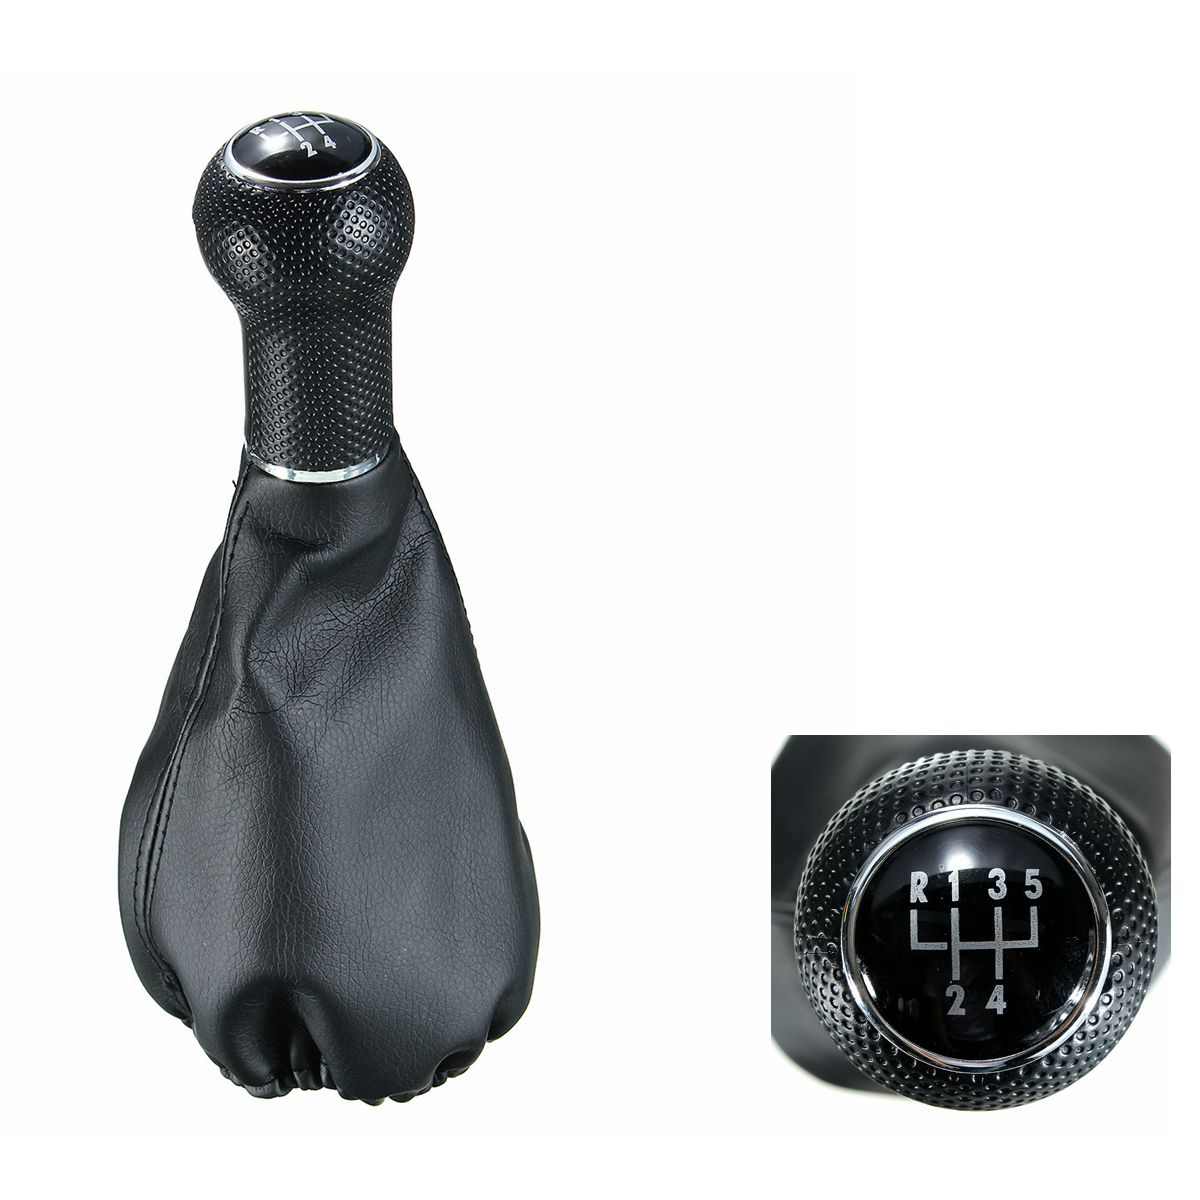 Gear Shift Knob Boot 5 Speed Leather For VW POLO ClASSIC 6N 6N2 SEAT IBIZA Auto